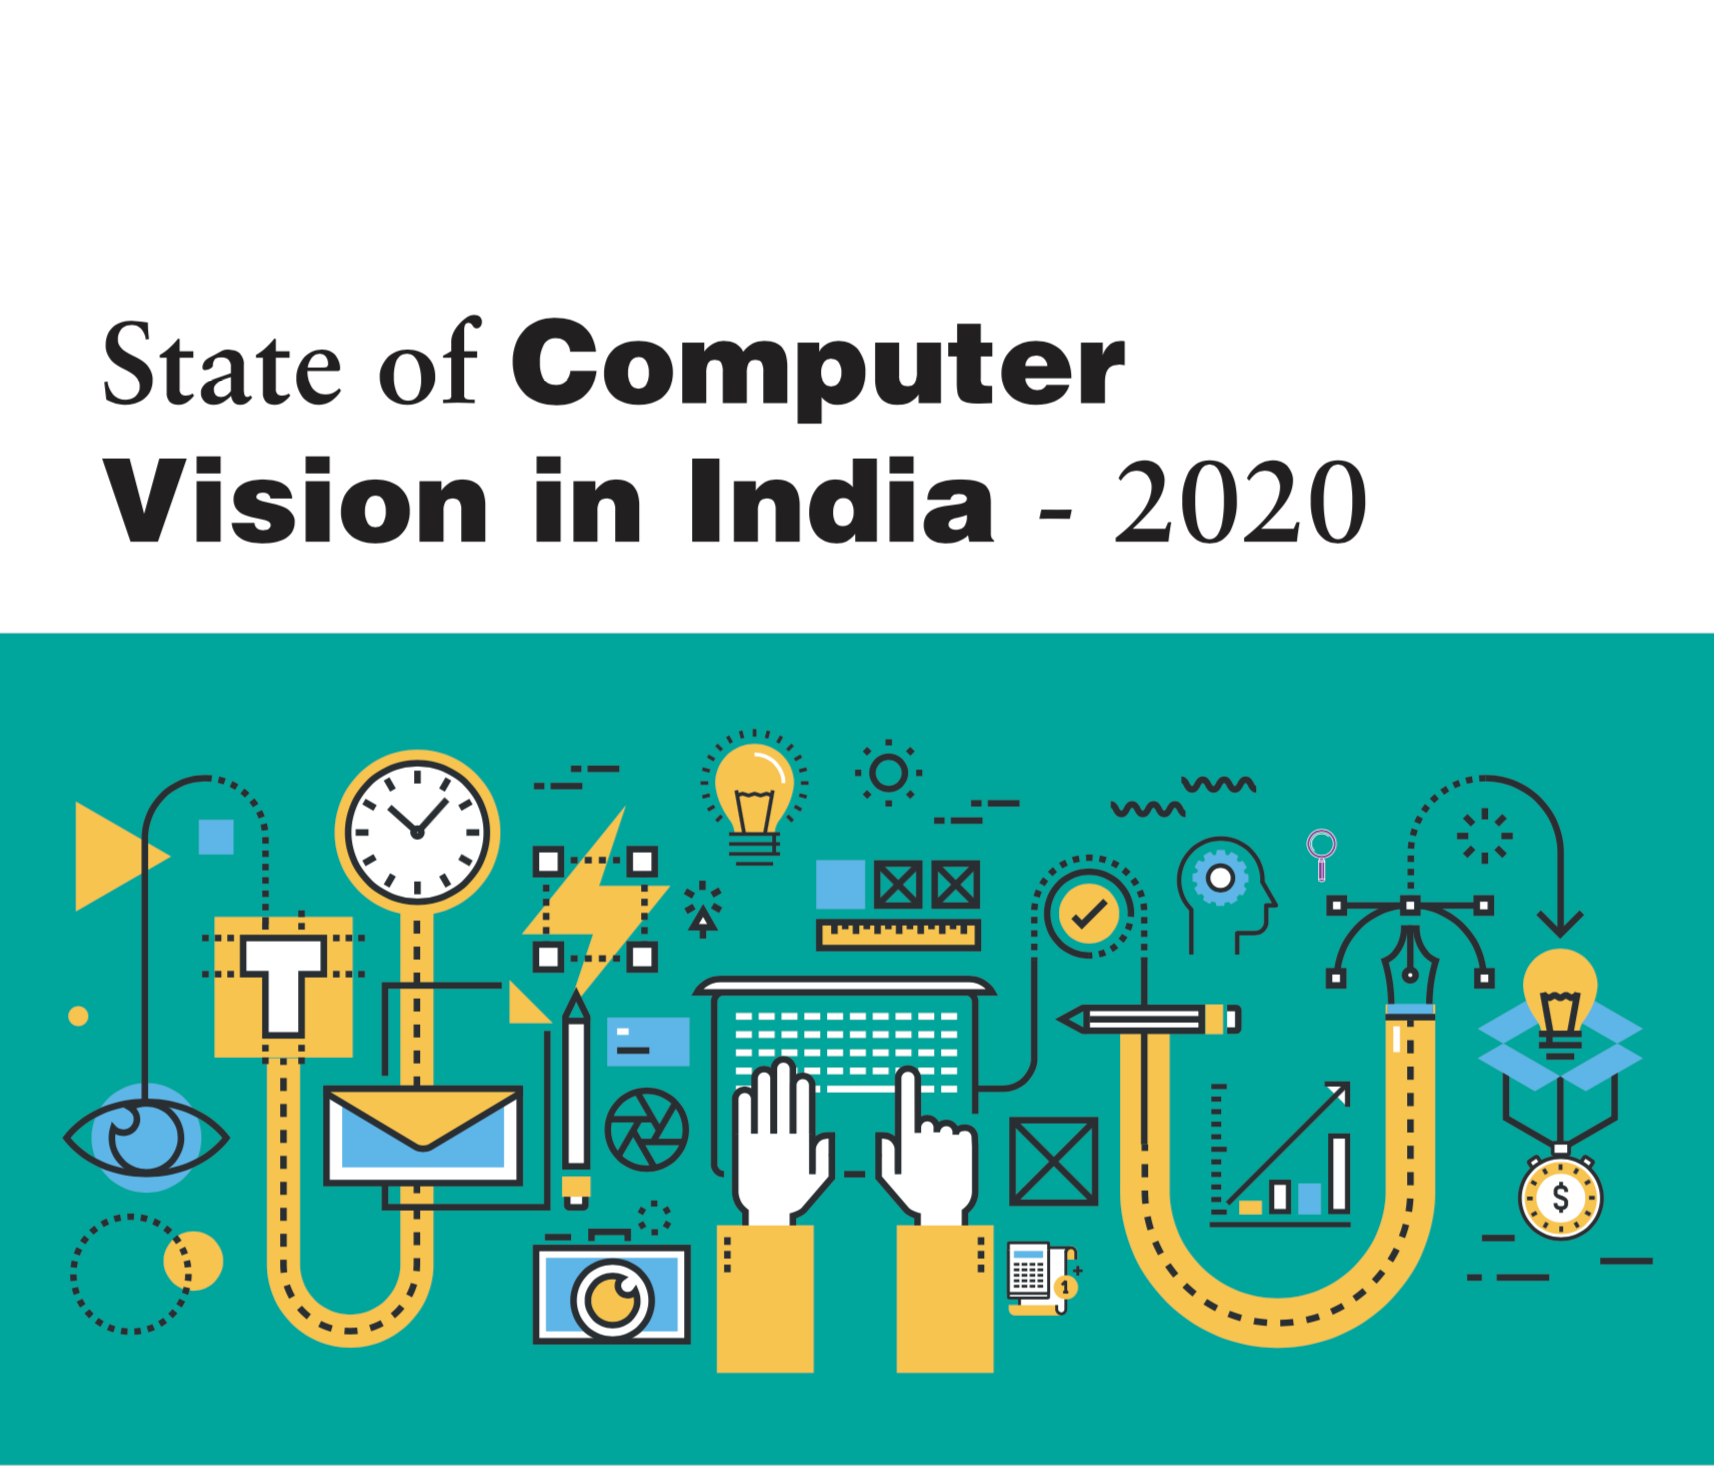 State of Computer Vision in India - 2020